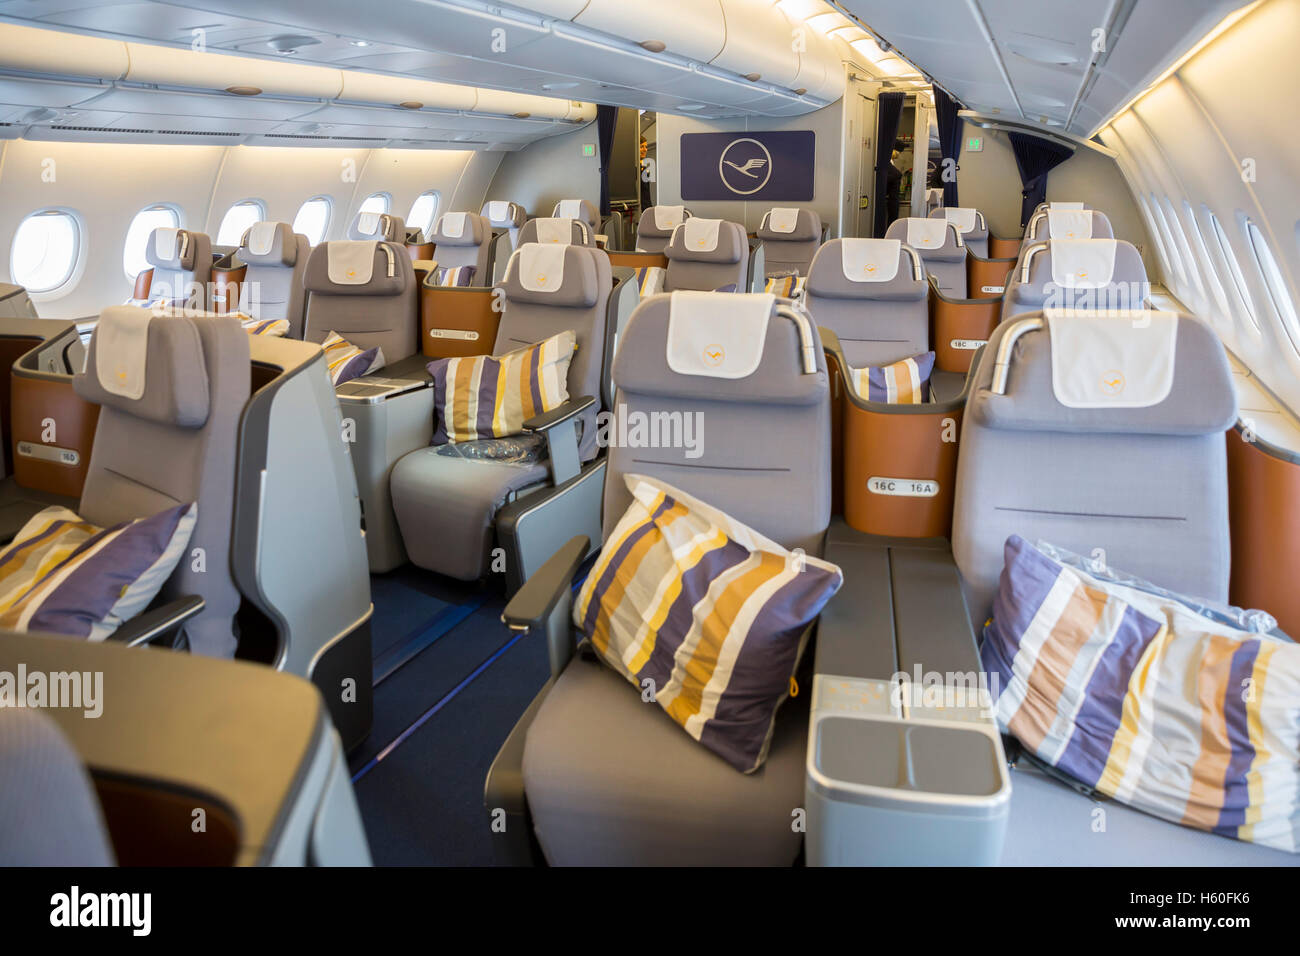 lufthansa planes interior. Black Bedroom Furniture Sets. Home Design Ideas